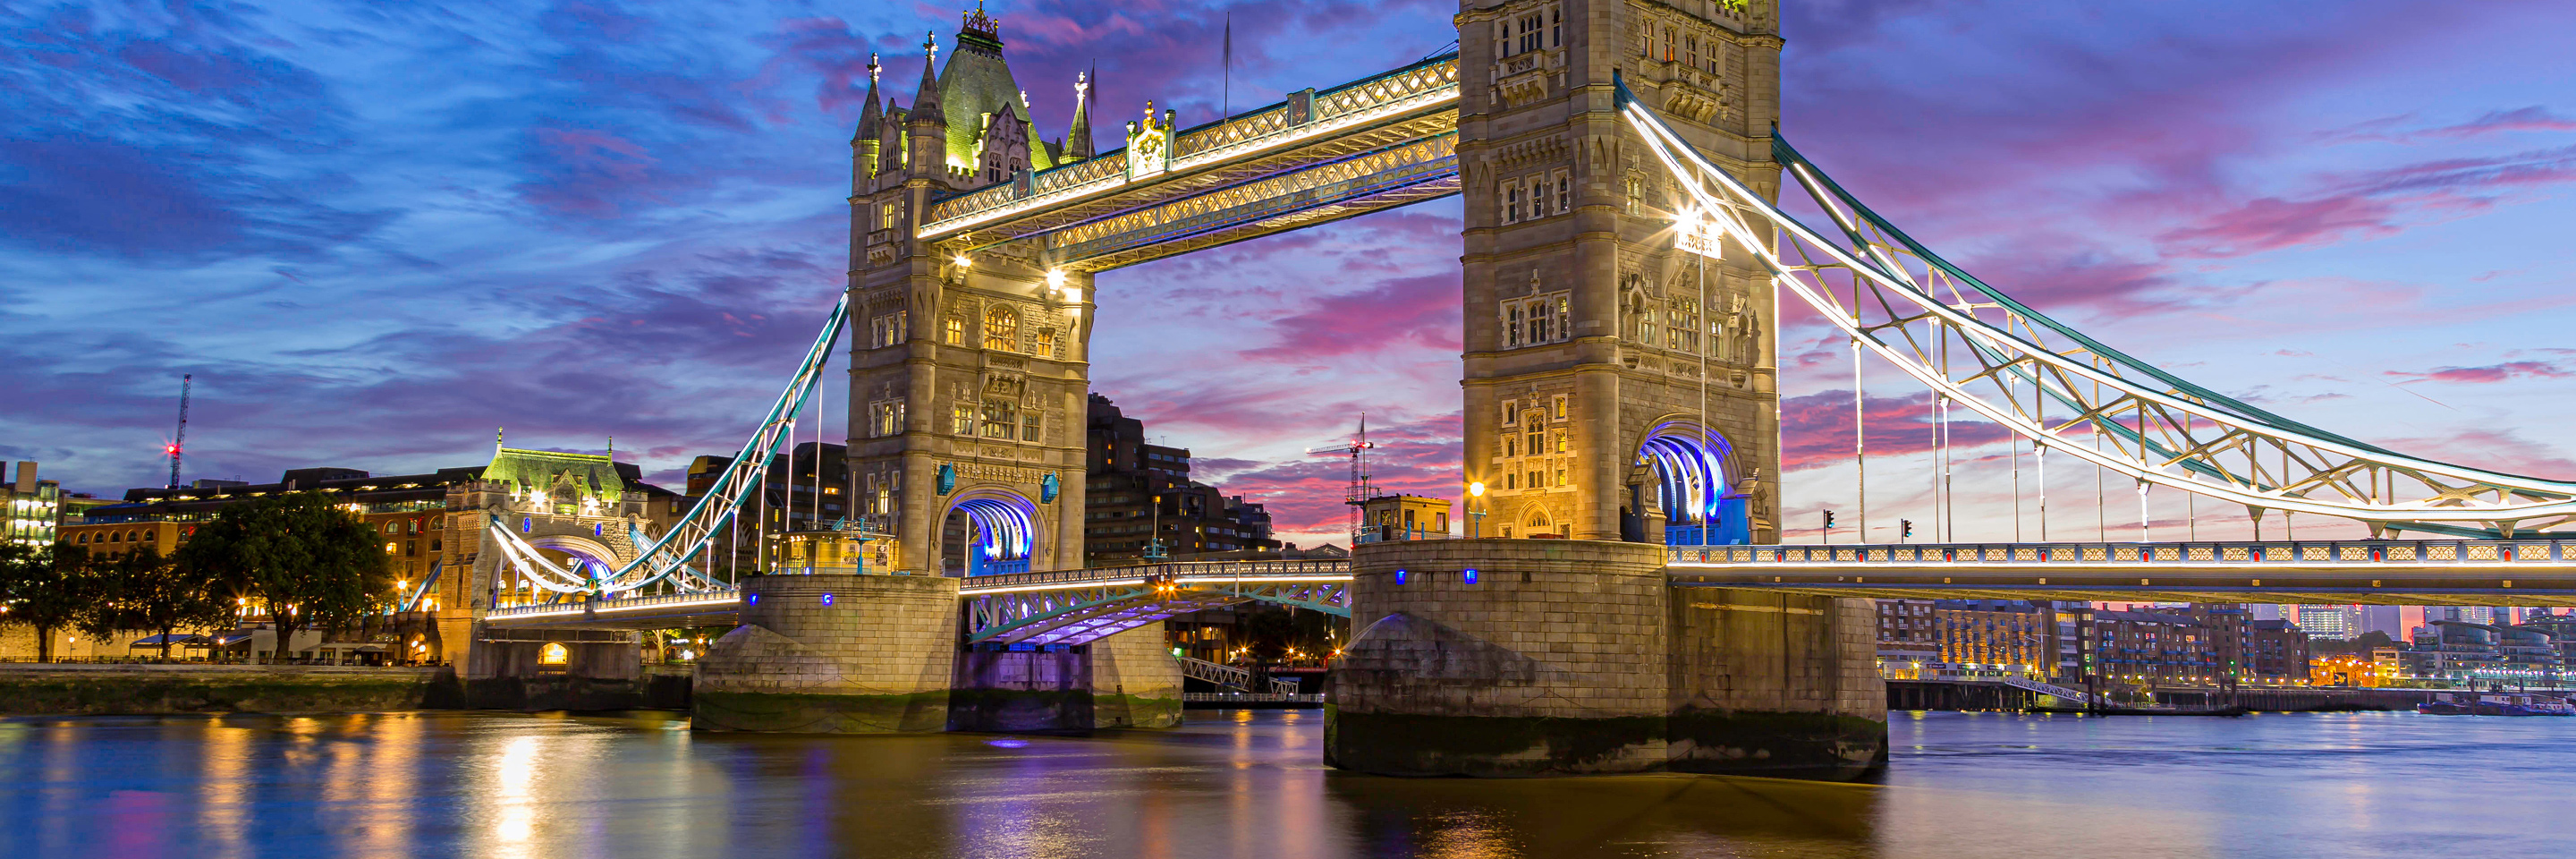 Burgundy & Provence with 1 Night in Marseille, 2 Nights in Paris & 3 Nights in London (Northbound)